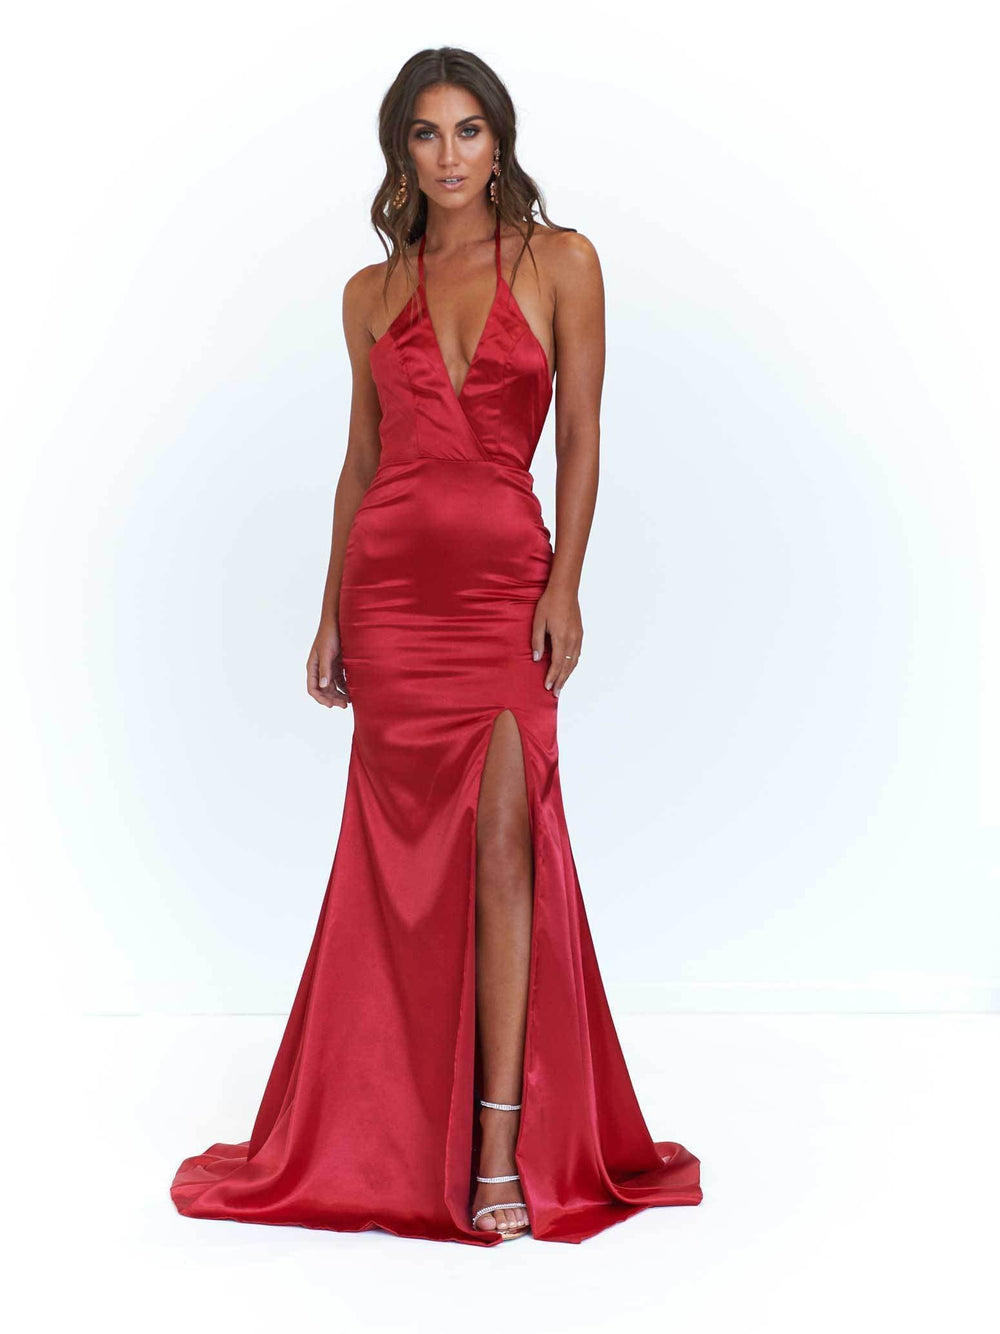 676aa07b88 A N Alyssa- Deep Red Satin Gown with Plunge Neckline and Side Slit ...